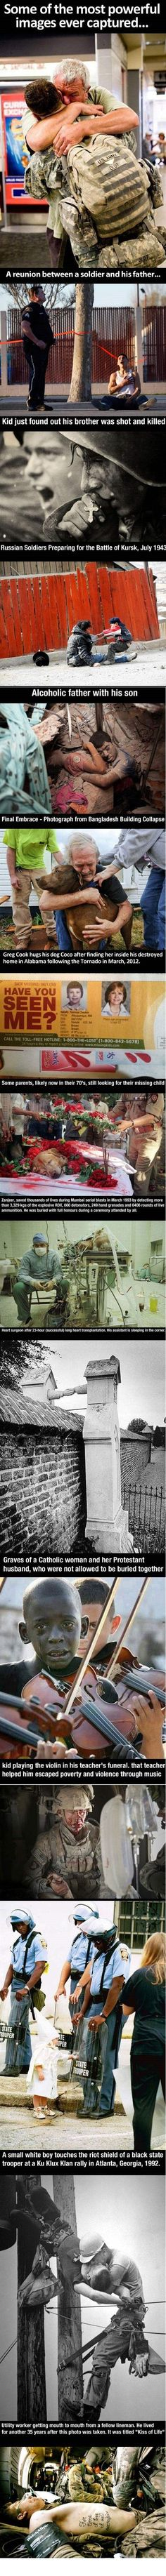 Some of the most powerful images ever captured - http://www.jokideo.com/: